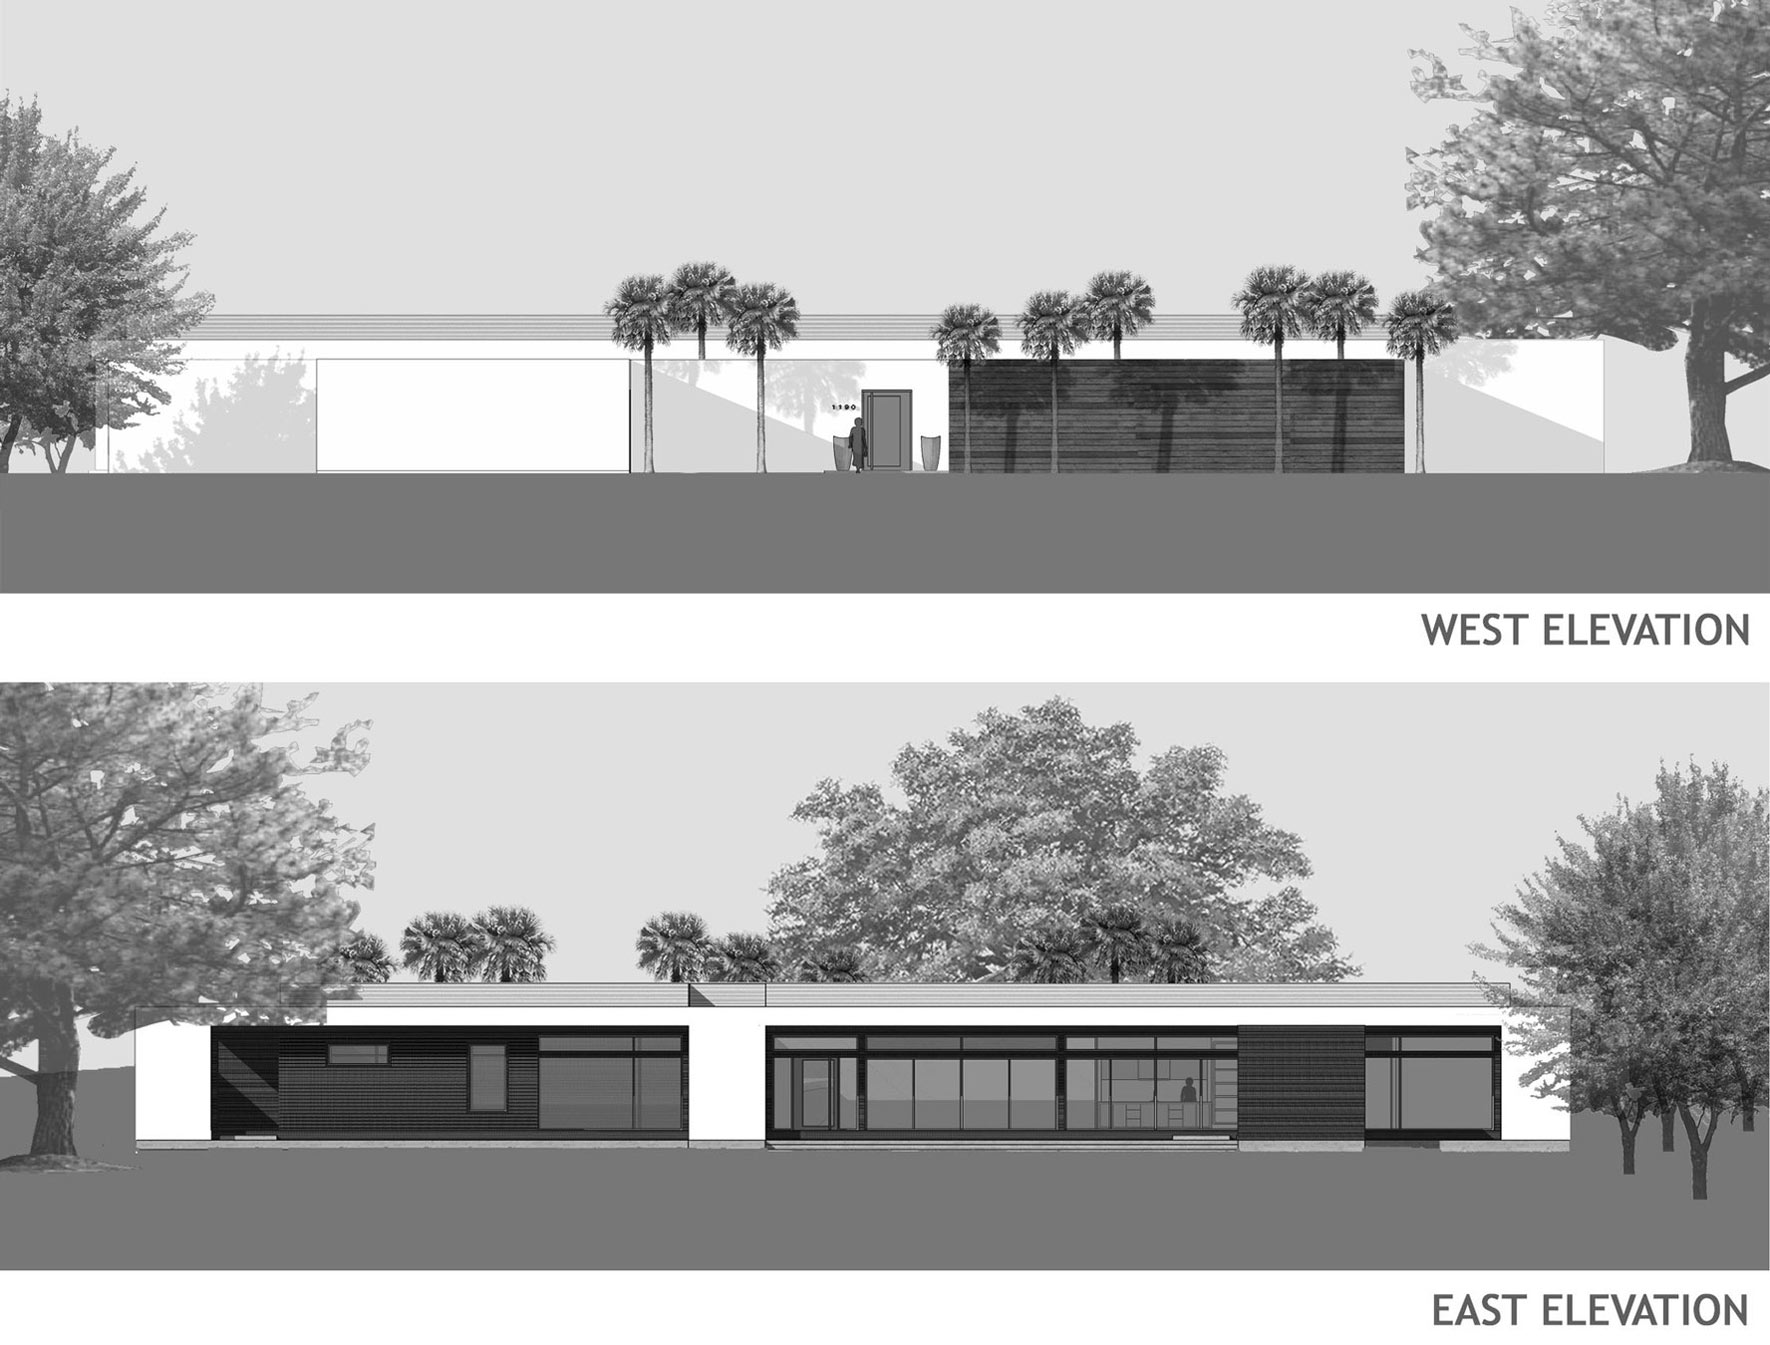 West & East Elevations, Eco-Friendly Contemporary Home in Winter Haven, Florida